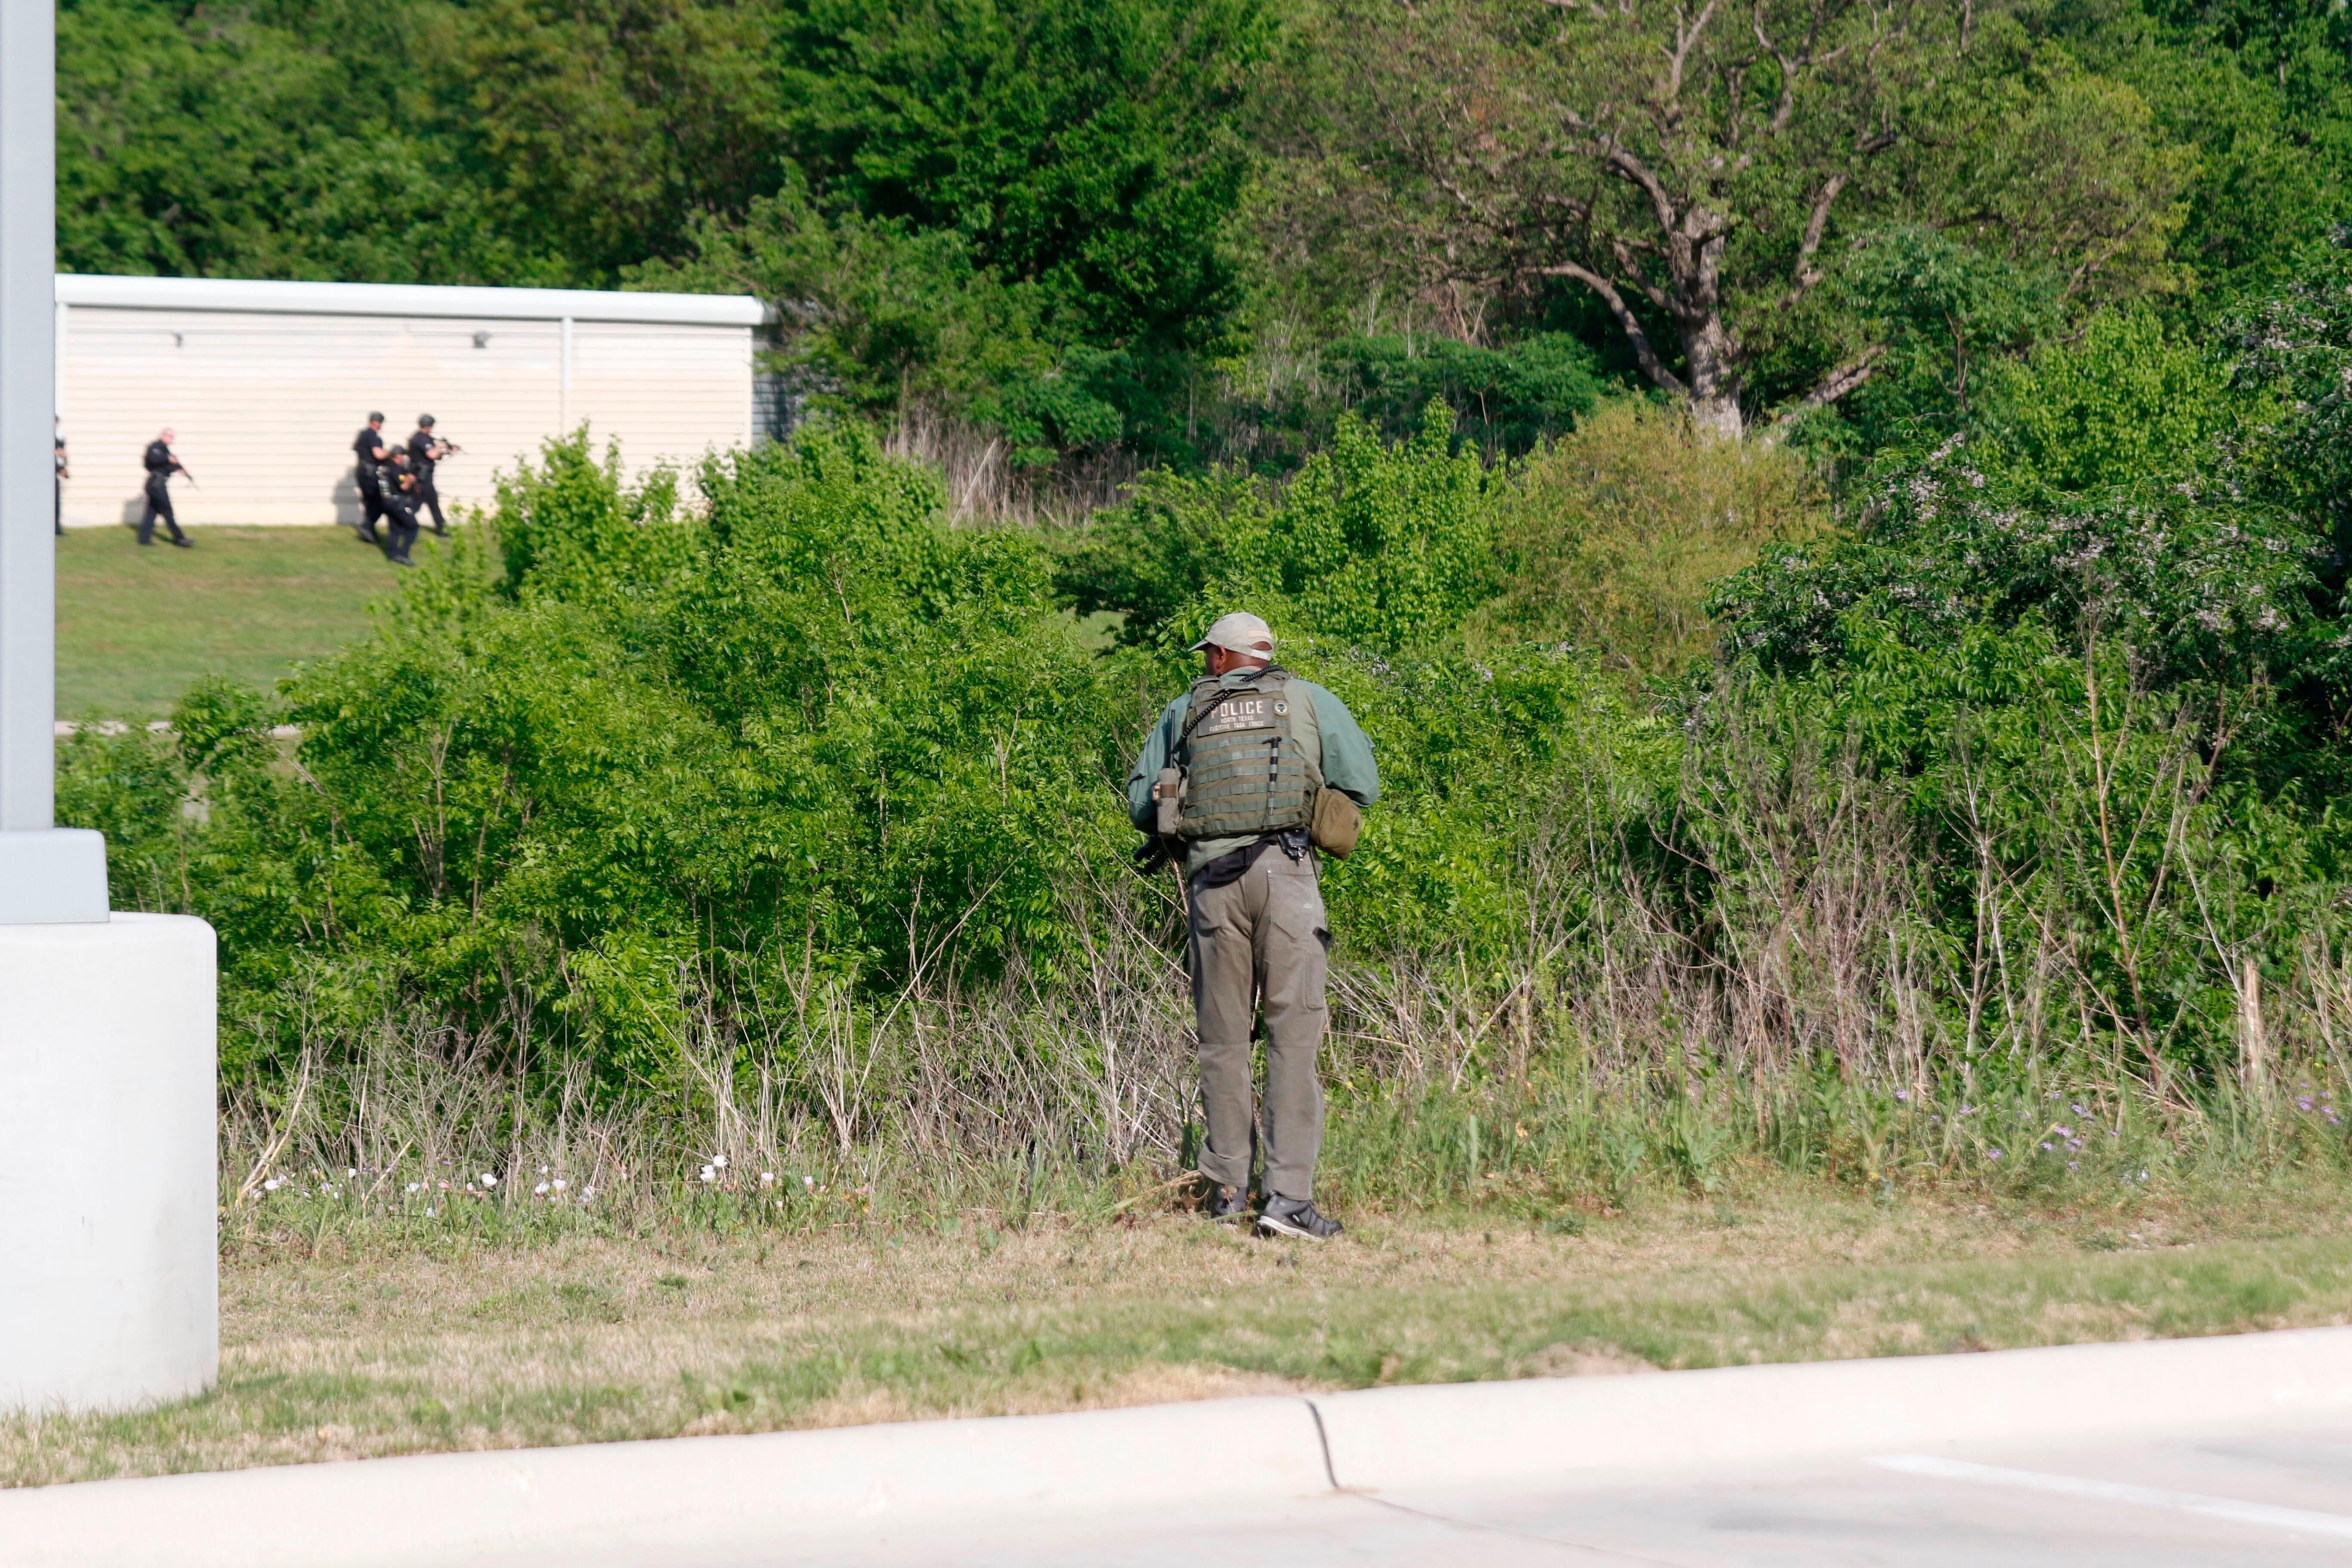 Dallas Police look for a suspect in the shooting of two police officers and a civilian Tuesday, April, 24,2018. Police are near ExtraSpace Storage, south of The Home Depot. Officer in the foreground is behind the Key-Whitman Eye Center on Central Expressway. (Ron Baselice/The Dallas Morning News via AP)